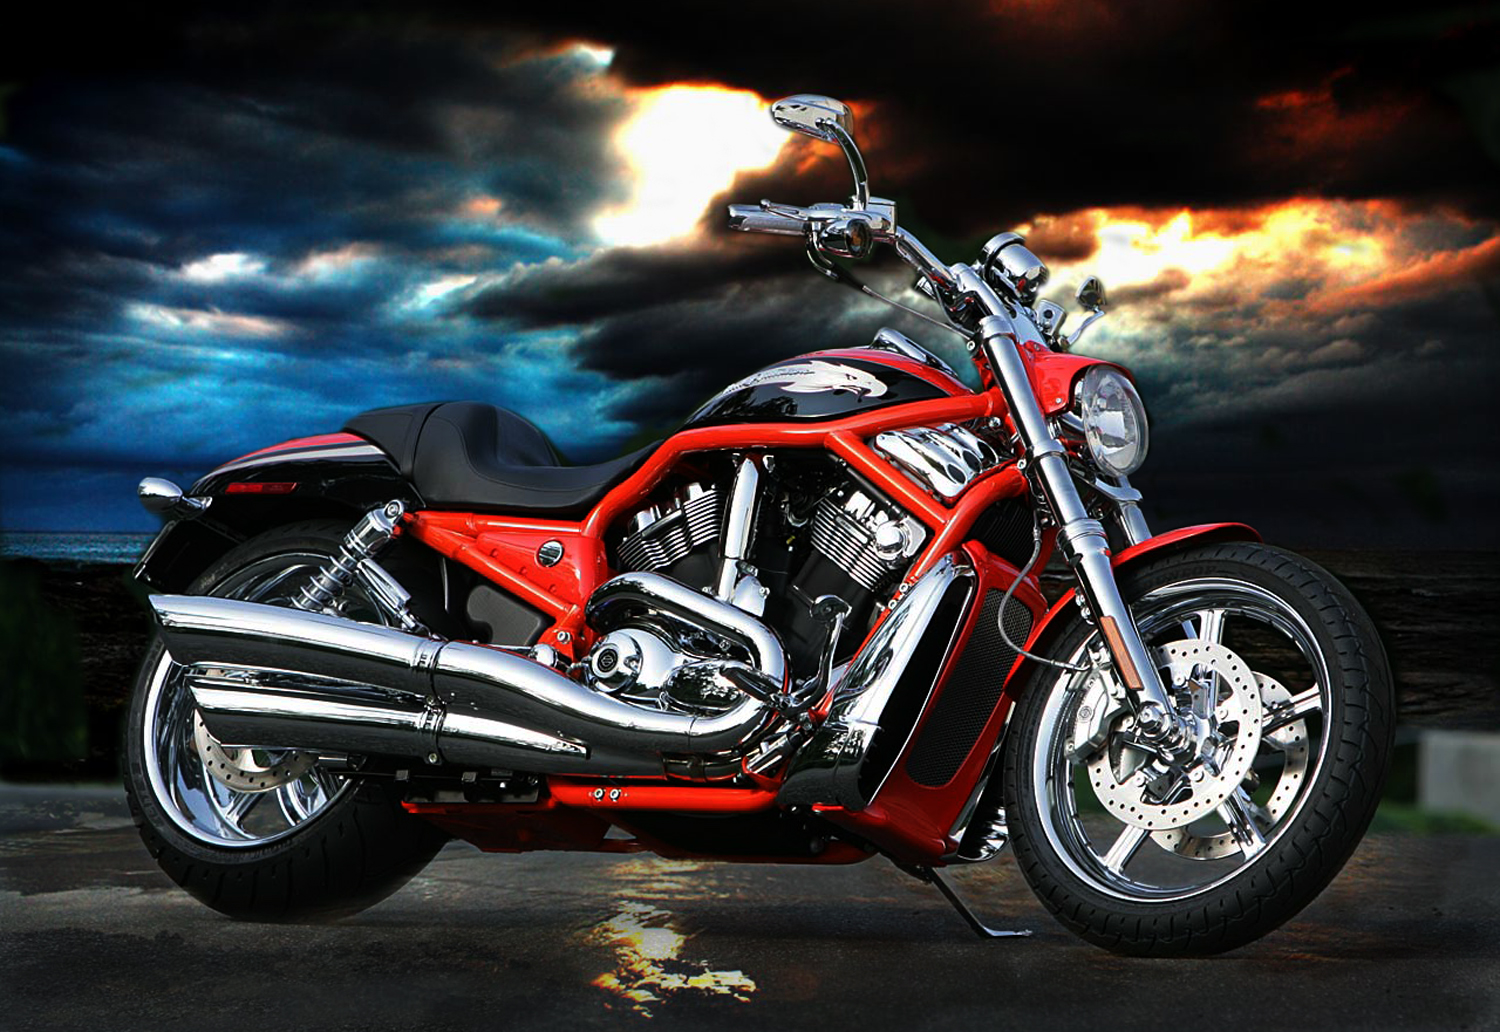 Cool Harley Davidson Wallpaper wallpaper wallpaper hd background 1500x1032